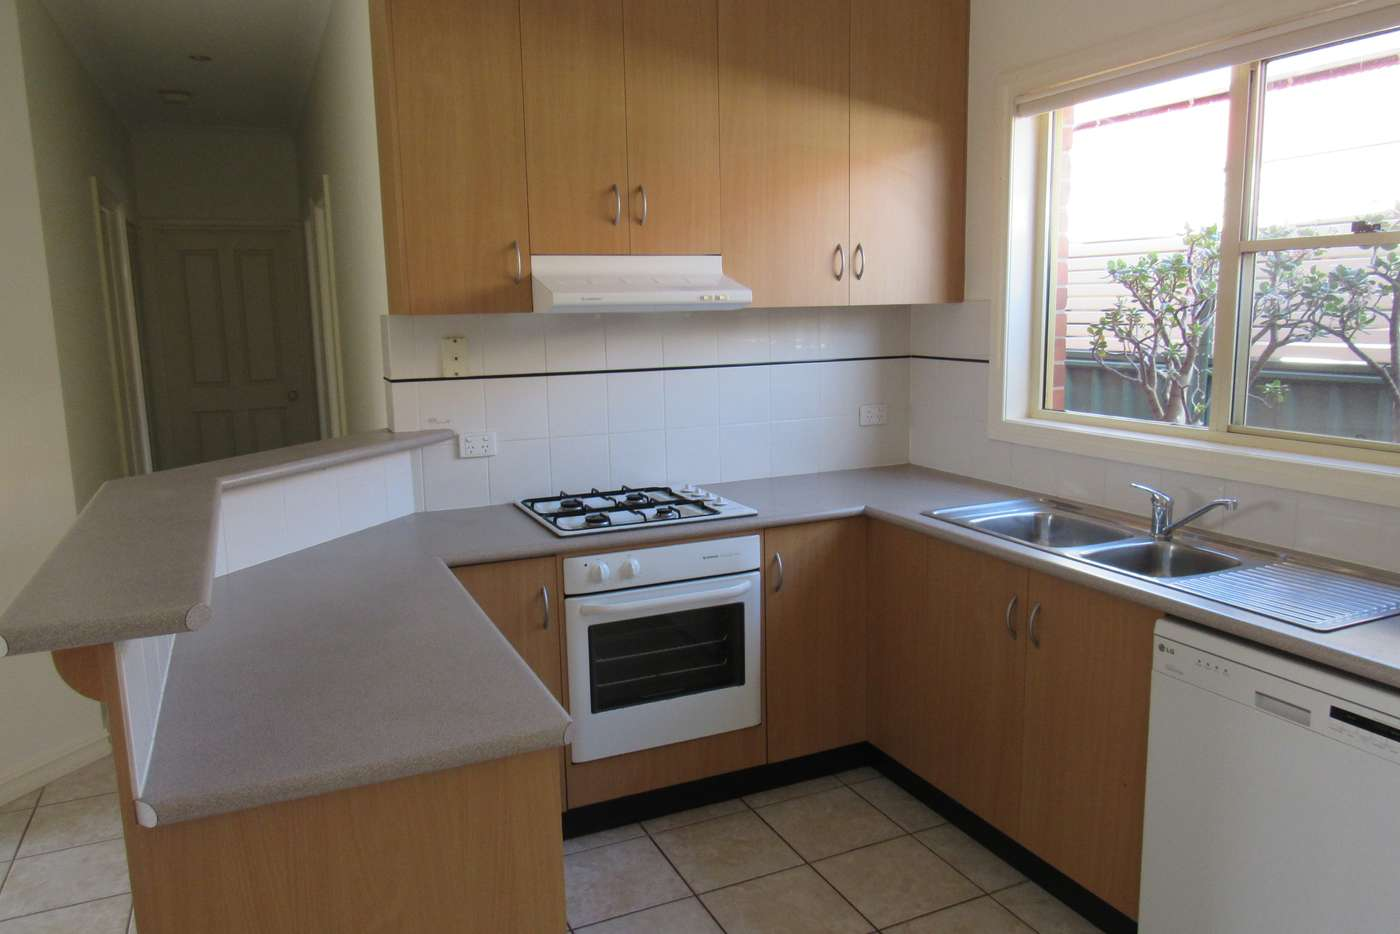 Sixth view of Homely townhouse listing, Unit 1/670 Jones St, Albury NSW 2640